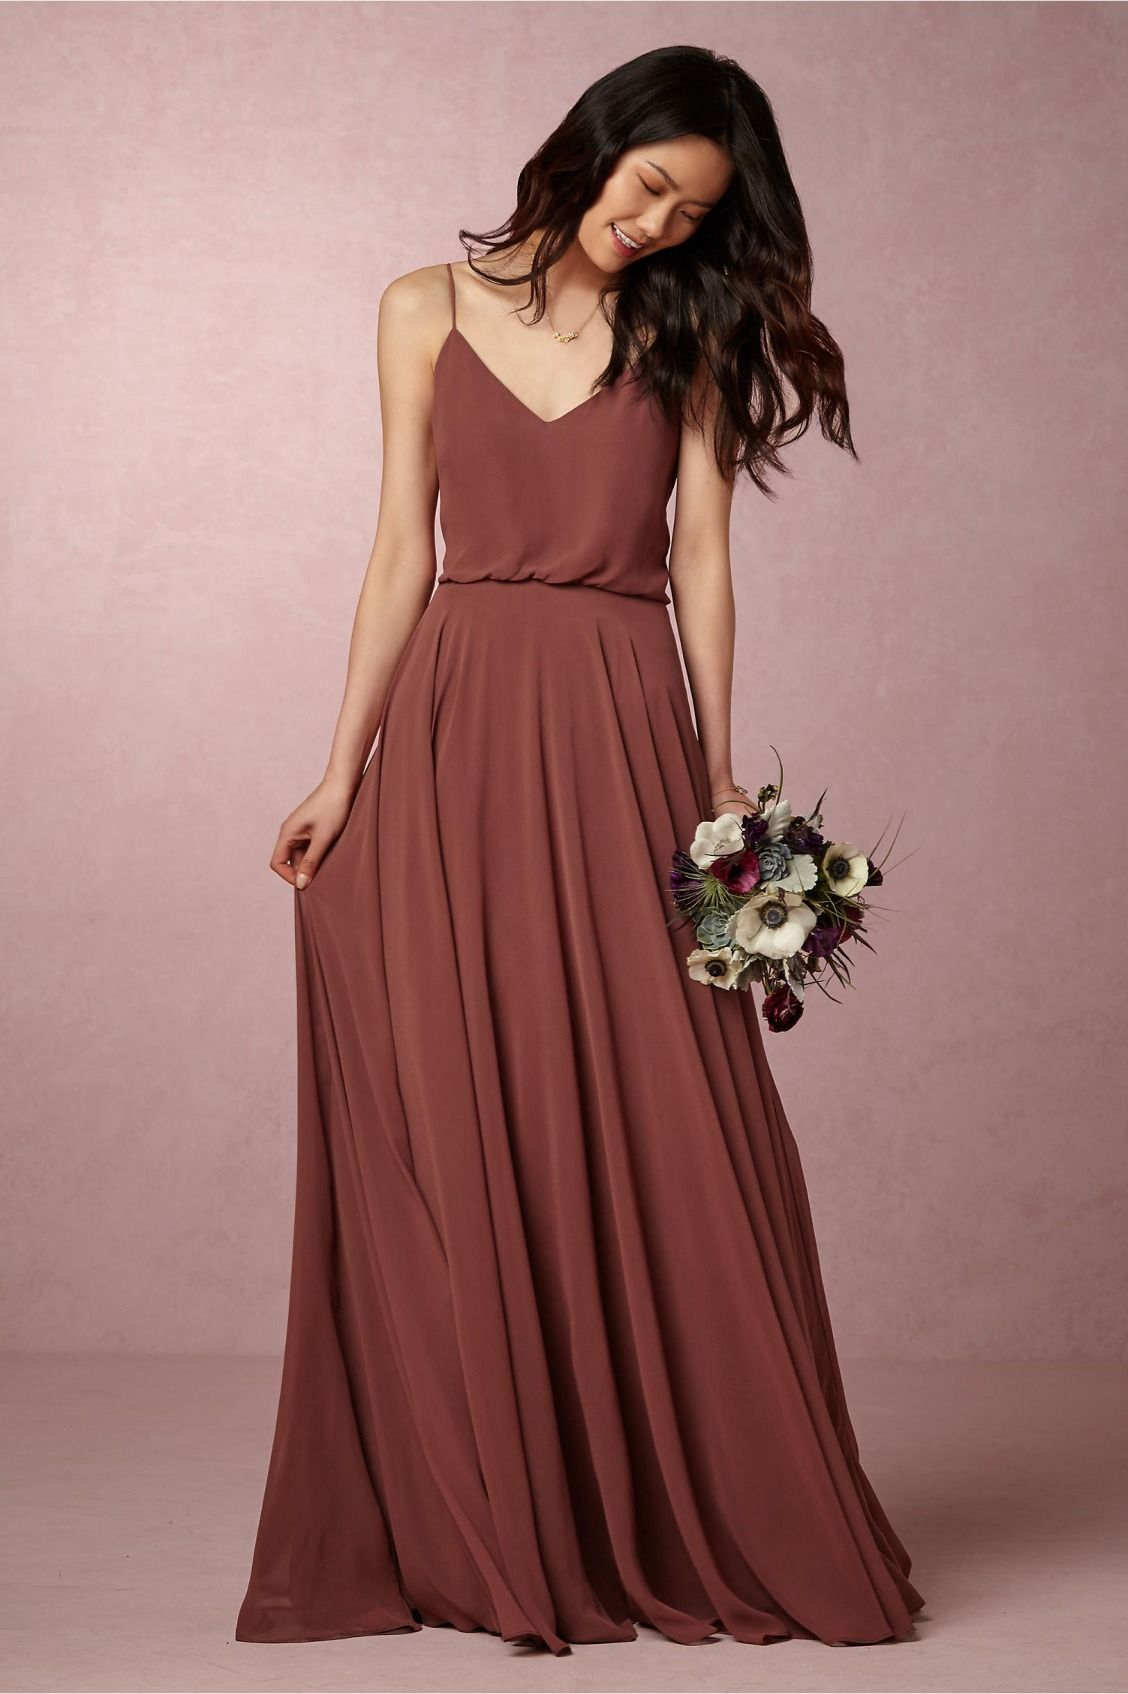 airy chiffon bridesmaid dress inesse dress in cinnamon rose from bhldn bridesmaid dresses. Black Bedroom Furniture Sets. Home Design Ideas